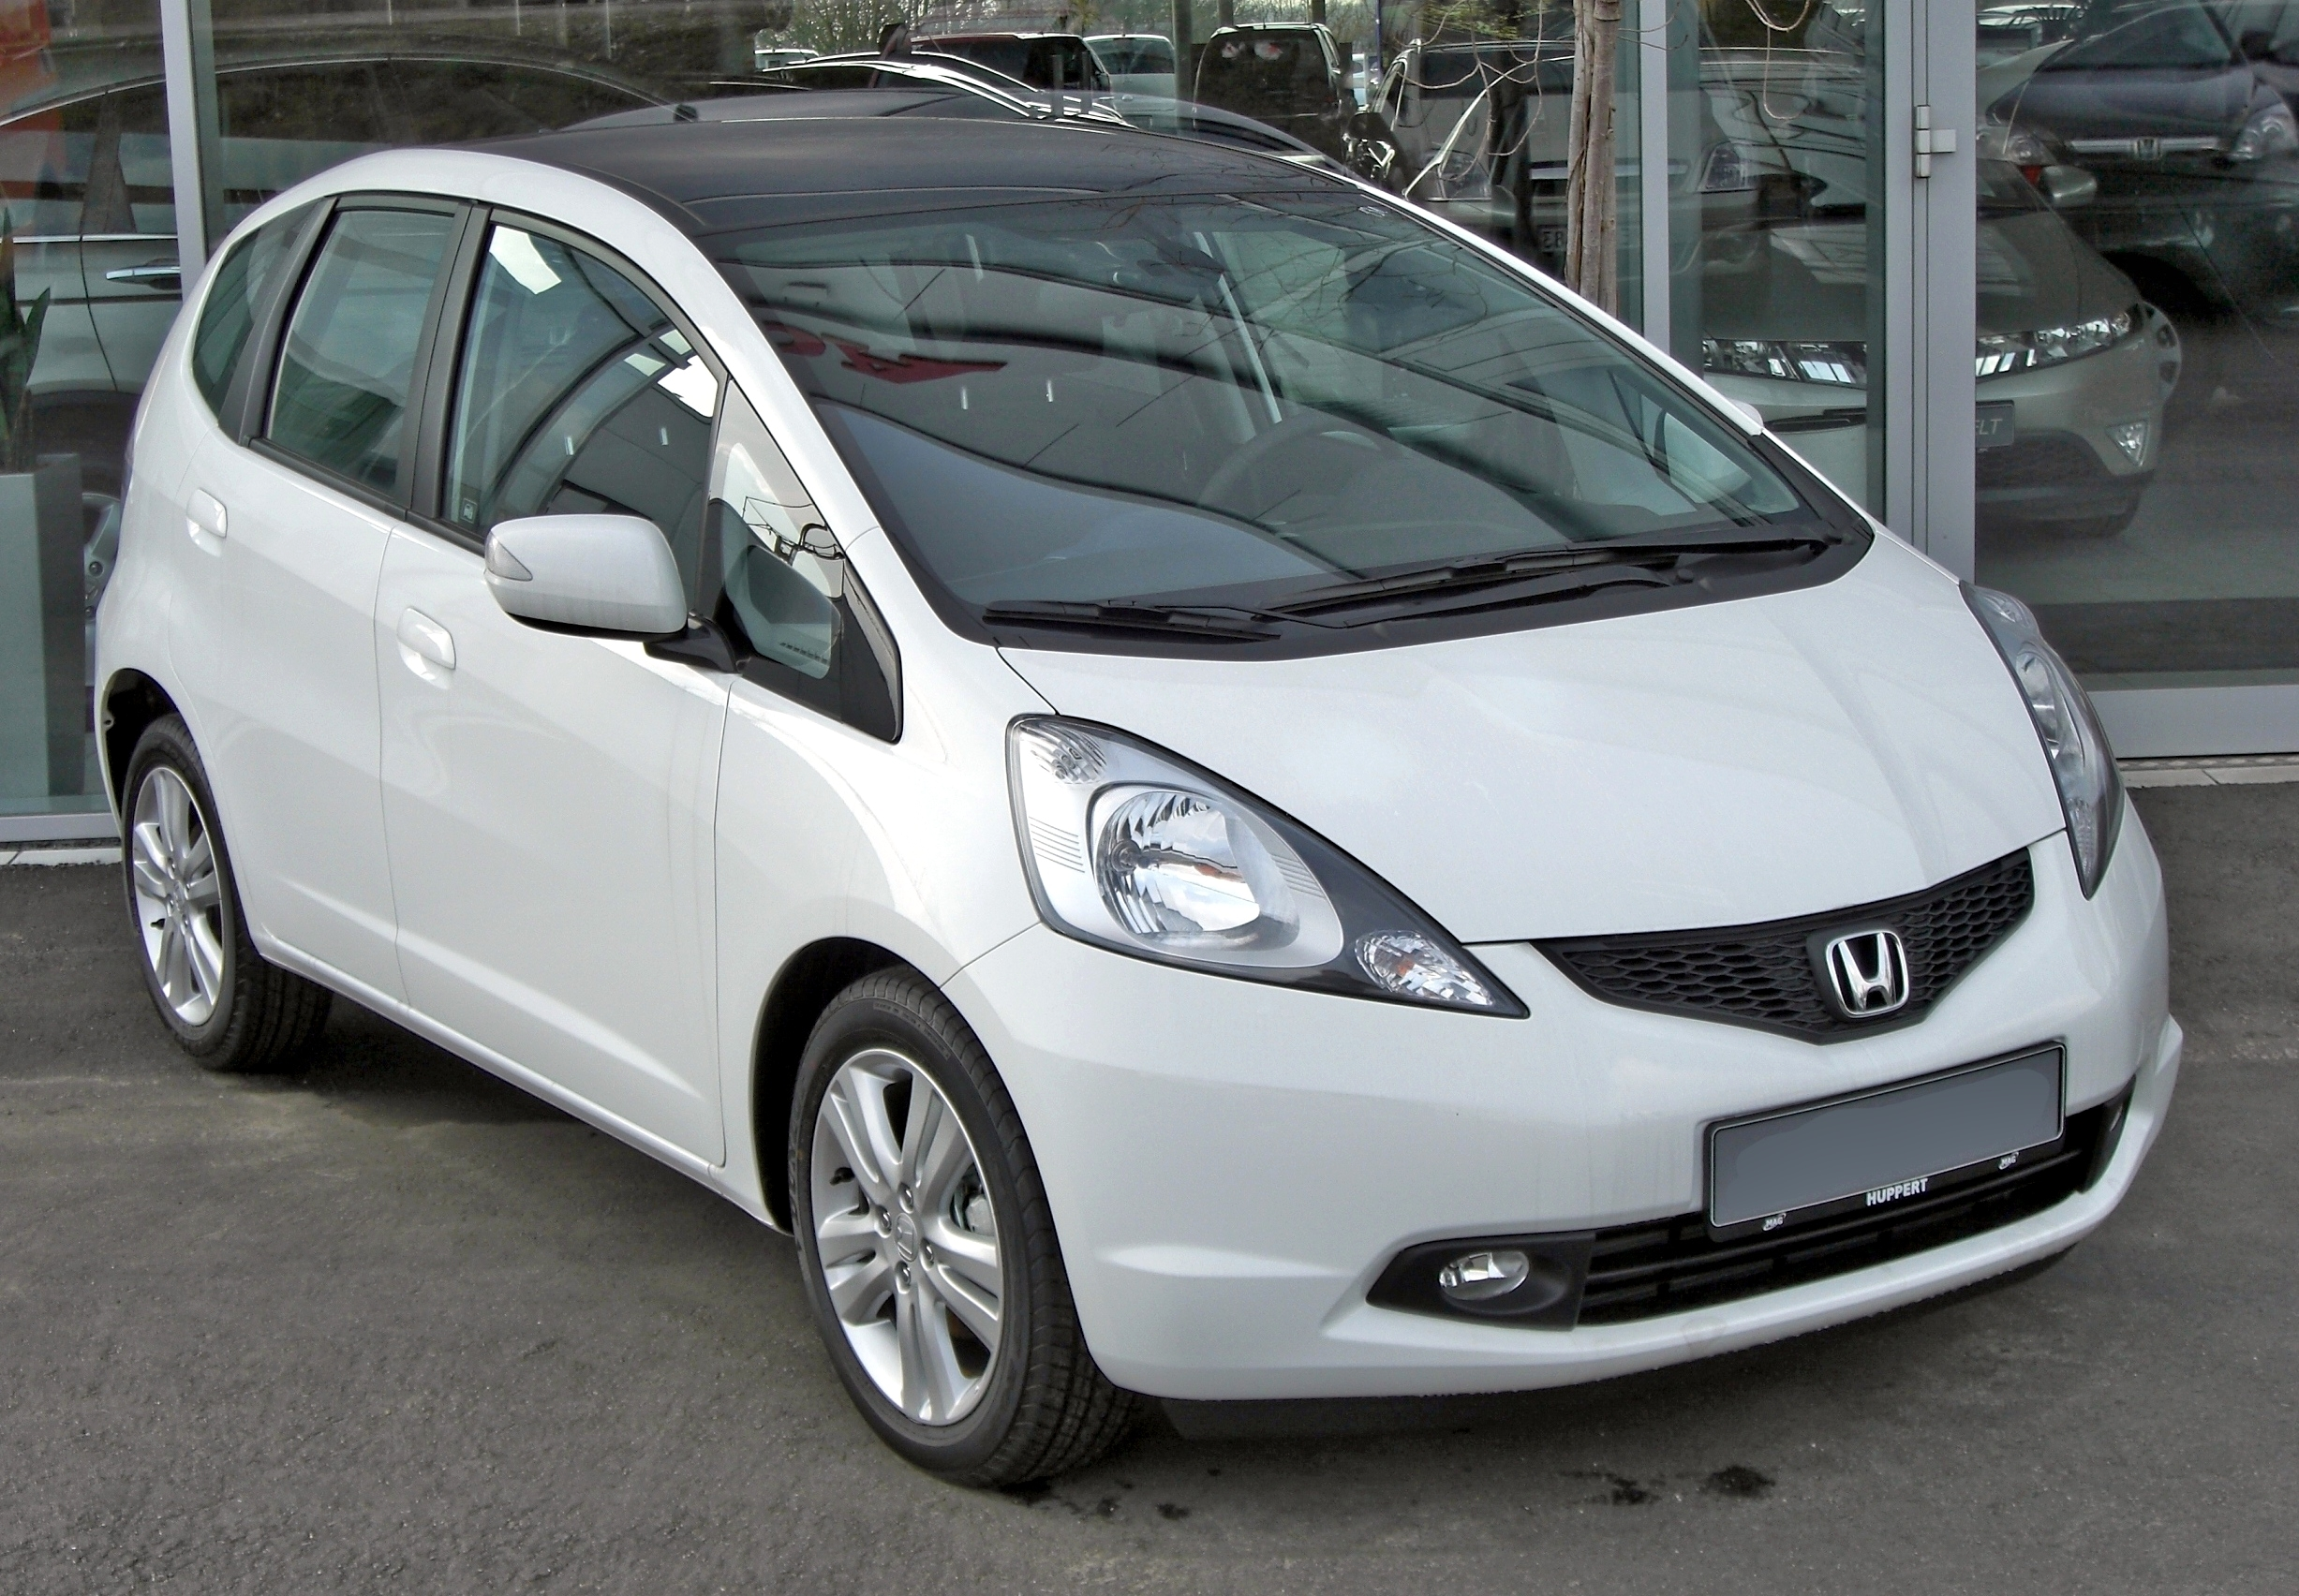 Honda jazz photo - 3